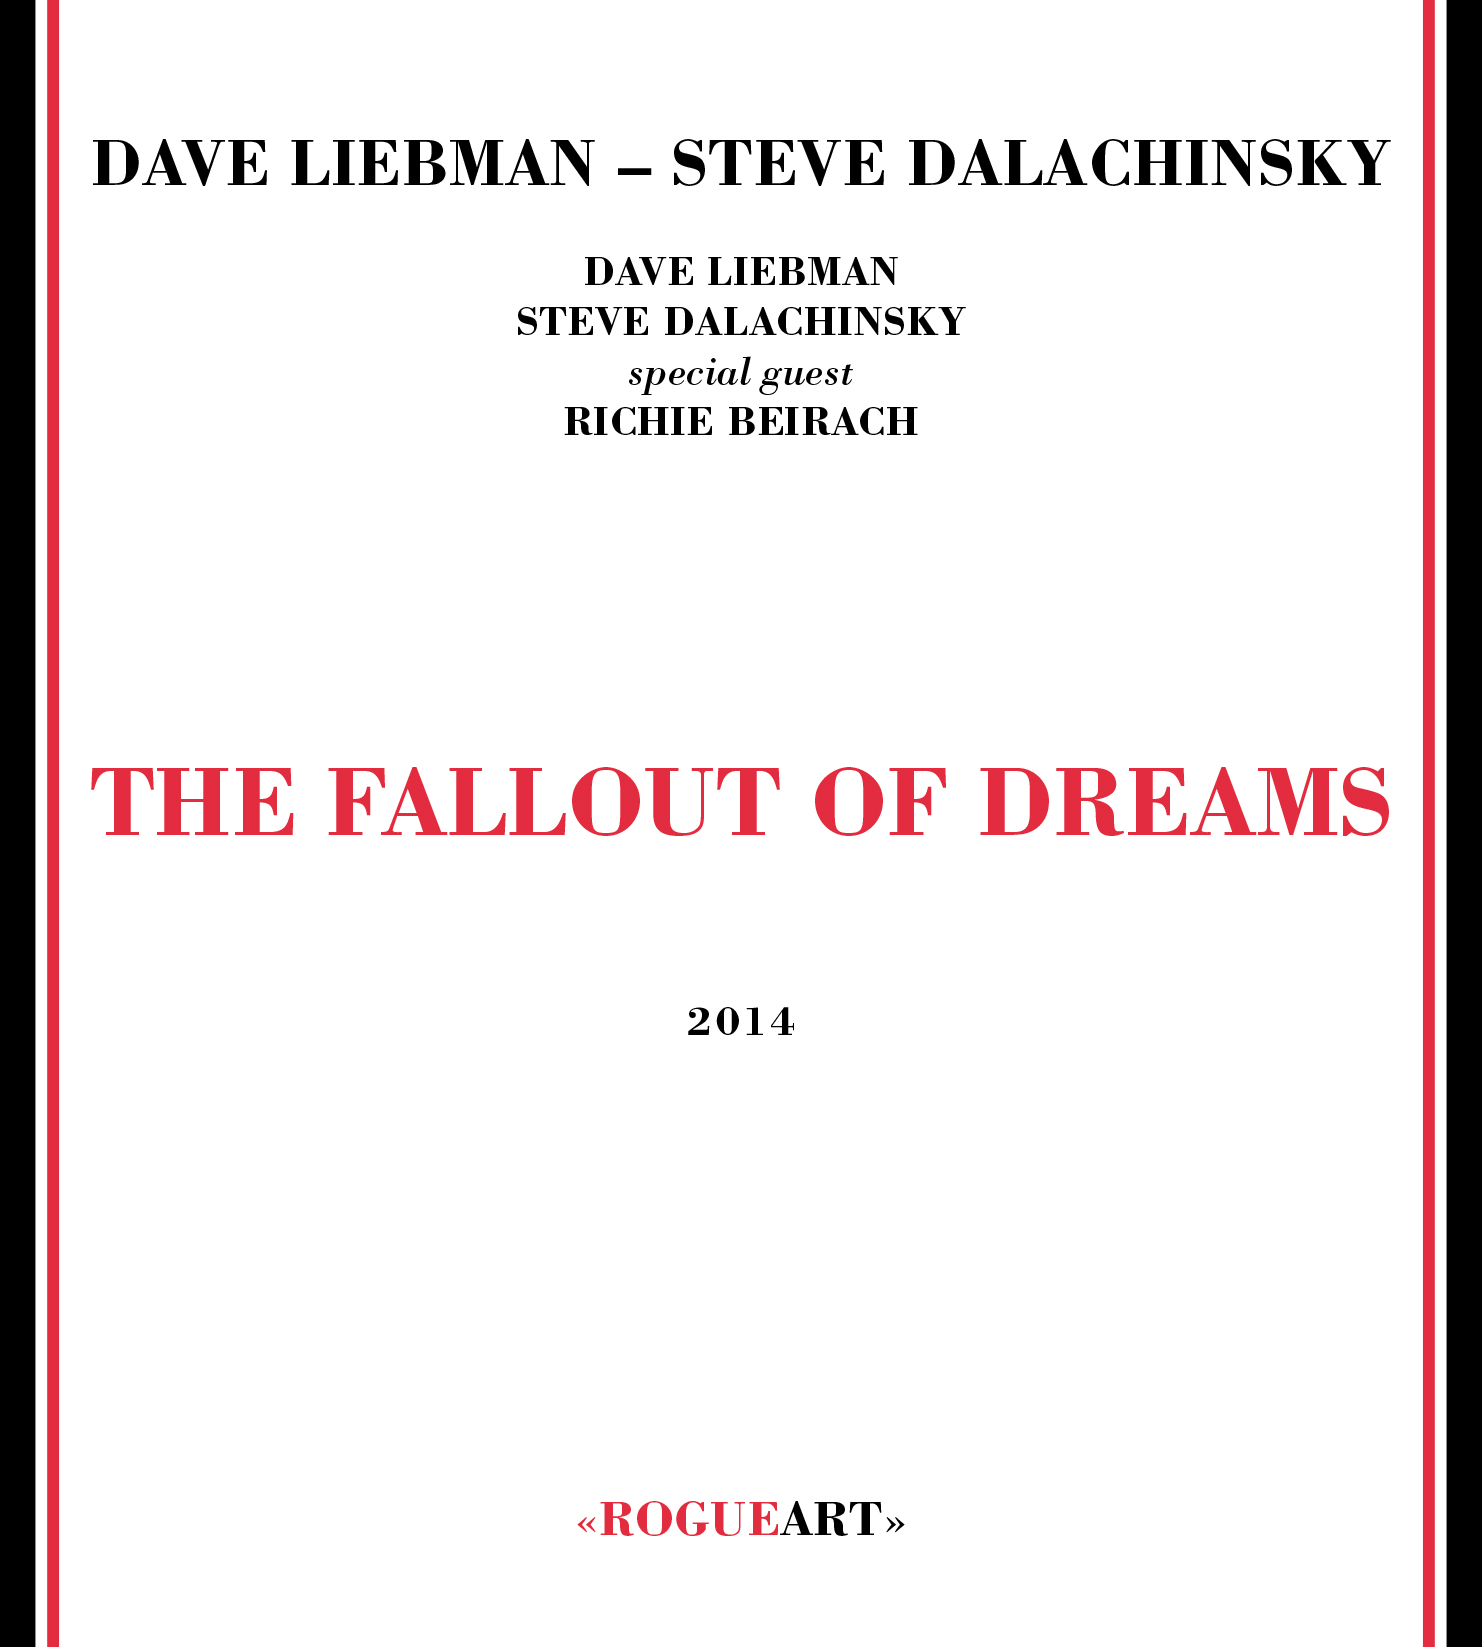 Front cover of the album THE FALLOUT OF DREAMS